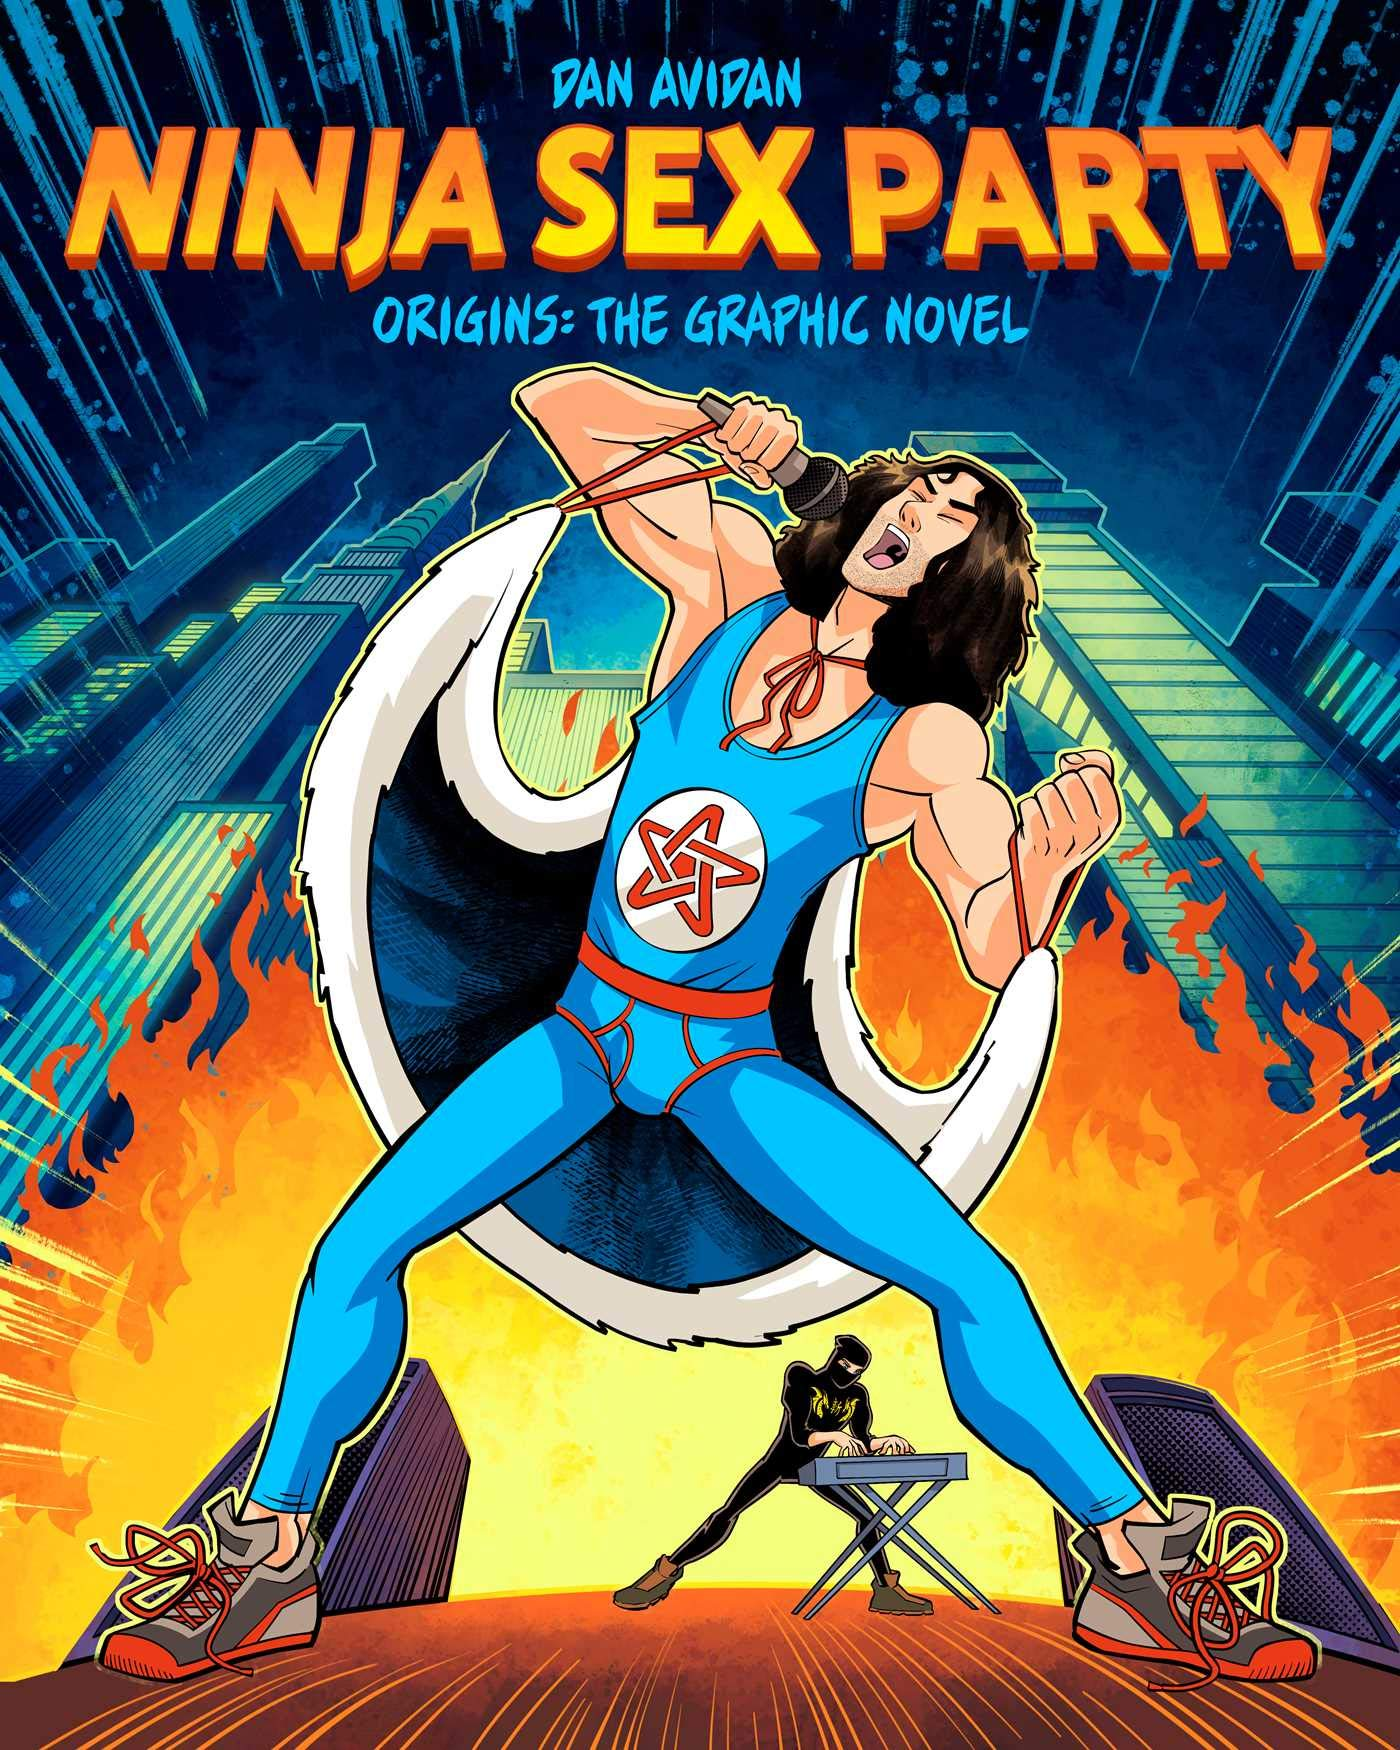 Fantoons announces the official 'Ninja Sex Party' graphic novel out May 5th